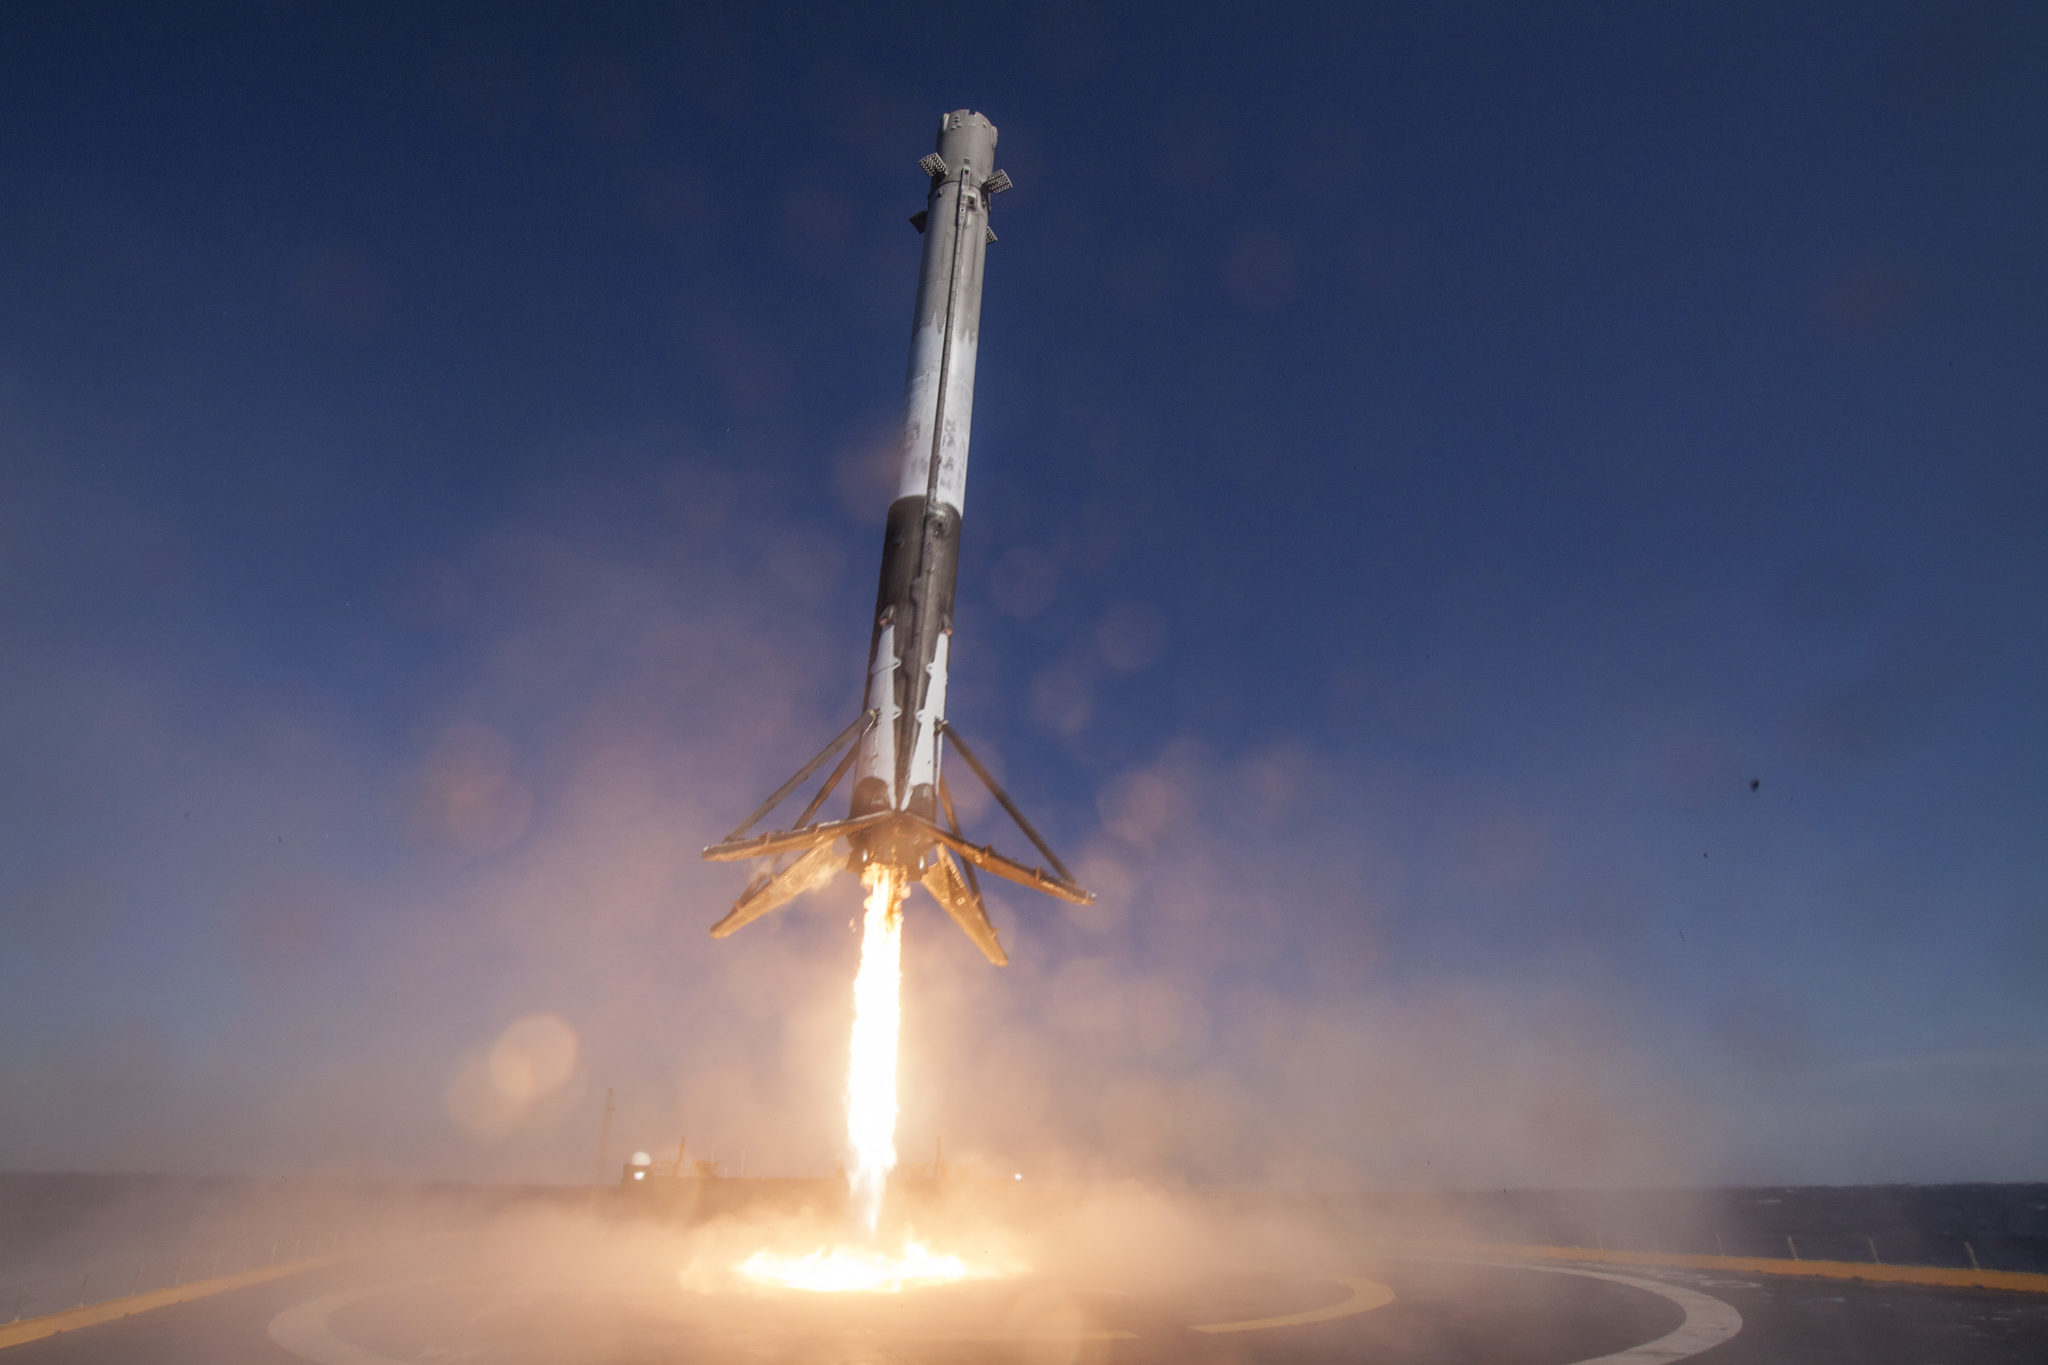 SpaceX CRS-8 rocket droneship